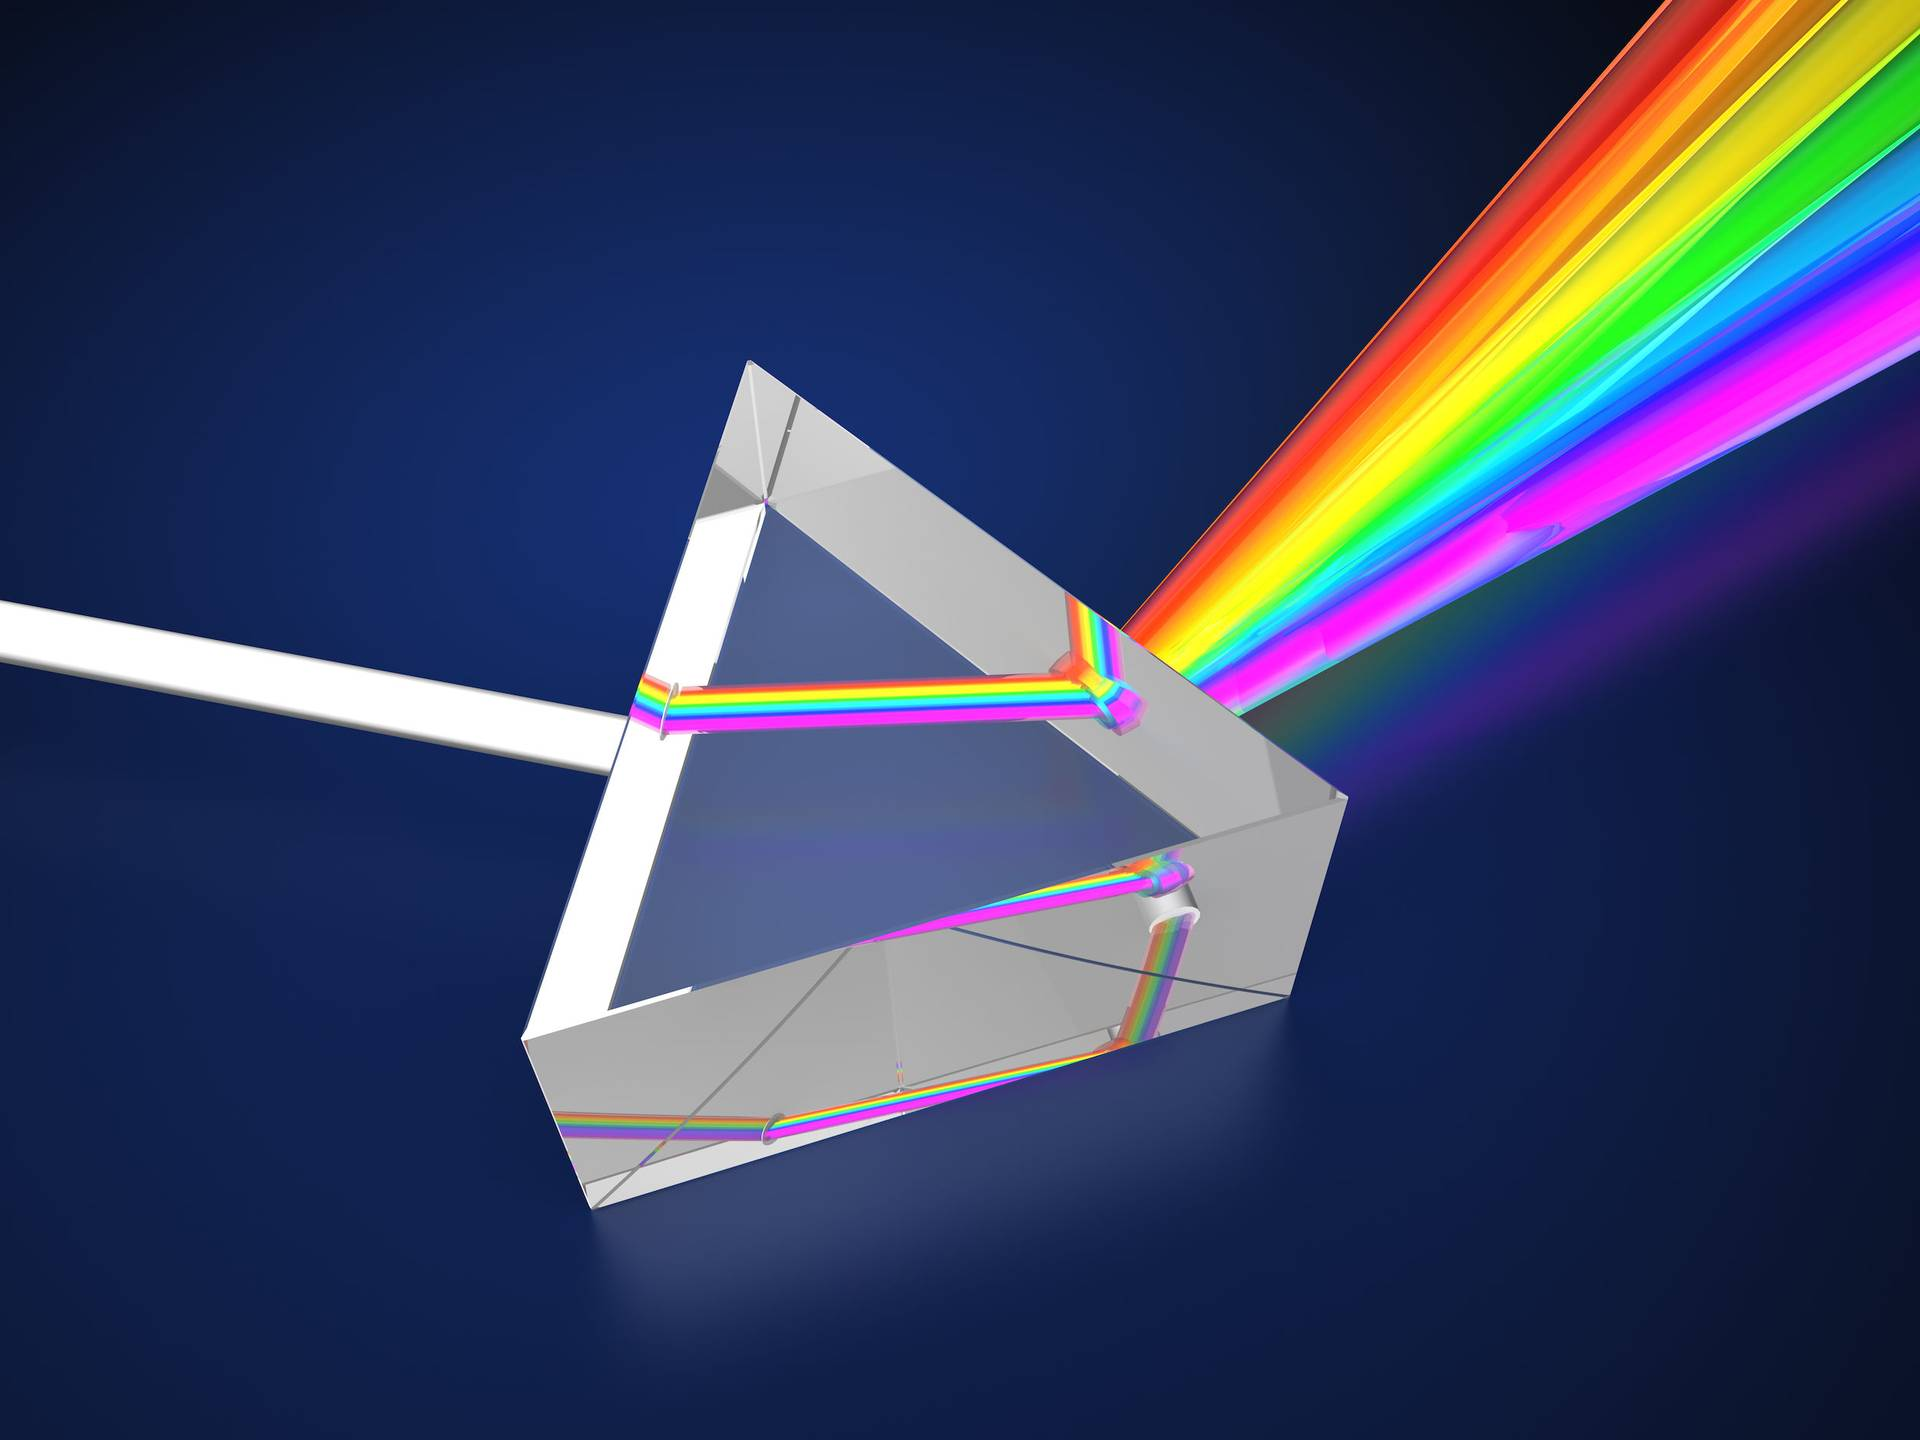 Spectrometry and Spectroscopy: What's the Difference?